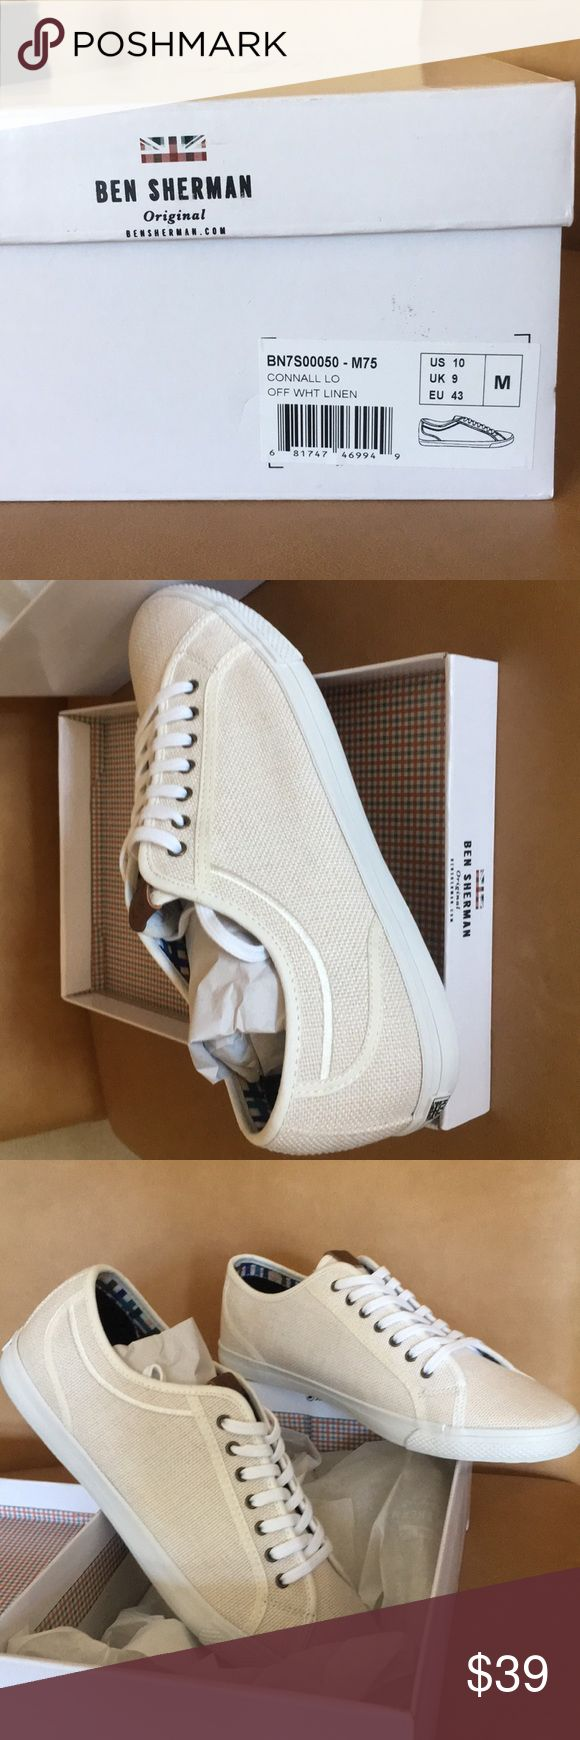 """New Ben Sherman men's size 10 white linen sneakers These are so awesome!! Purchased recently from Saks Fifth Ave.  New in box, unworn.  By renowned British designer Ben Sherman. Color is off-white or very light cream linen, size men's US 10.  Style is called """"Connall Lo"""".  Perfect pair to rock for the 2017 fall fashion sneaker trend. Ben Sherman Shoes Sneakers"""